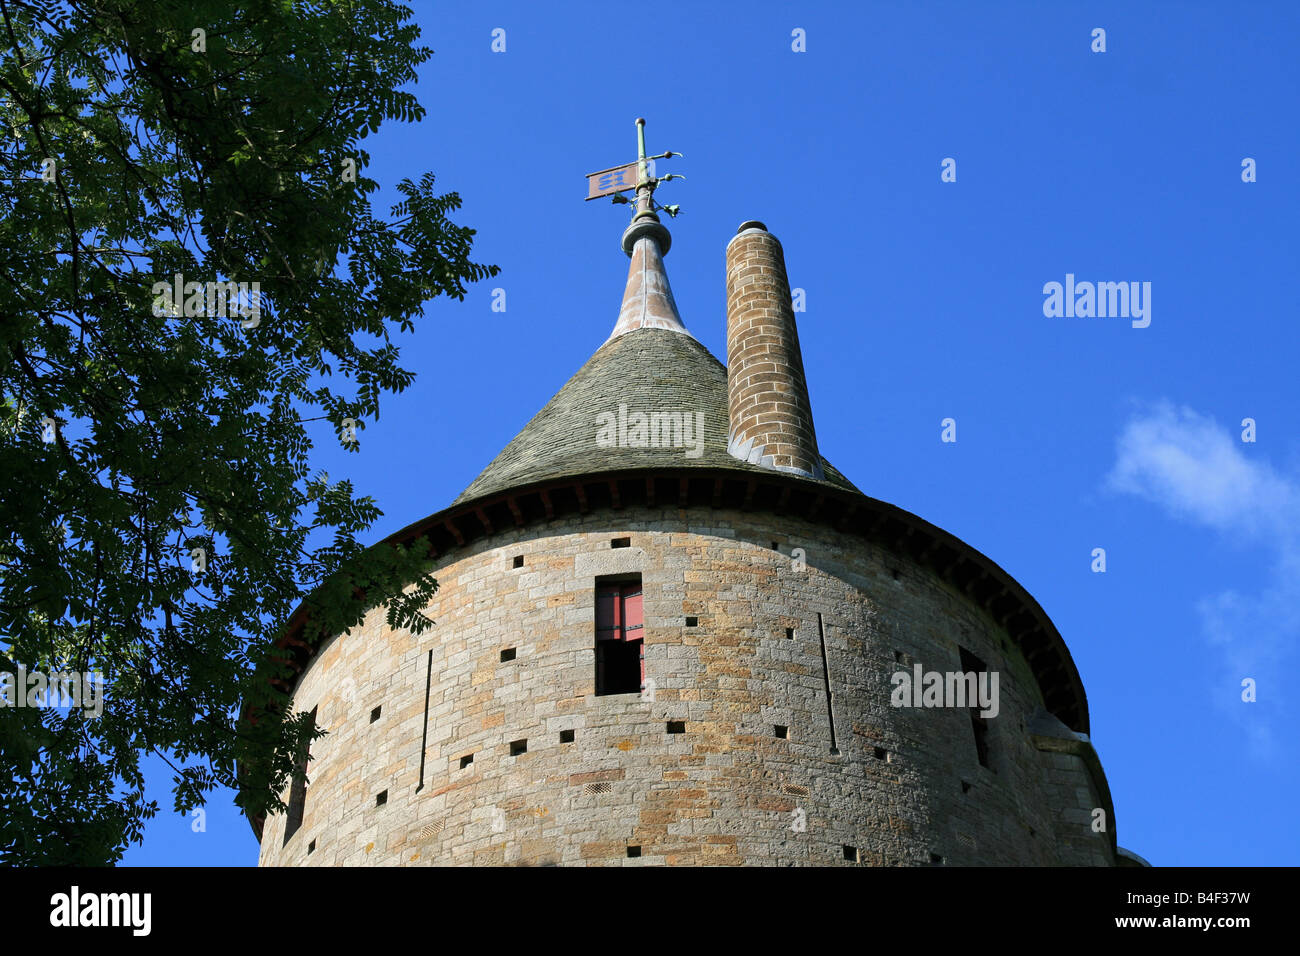 The Keep Tower at Castell Coch - Stock Image